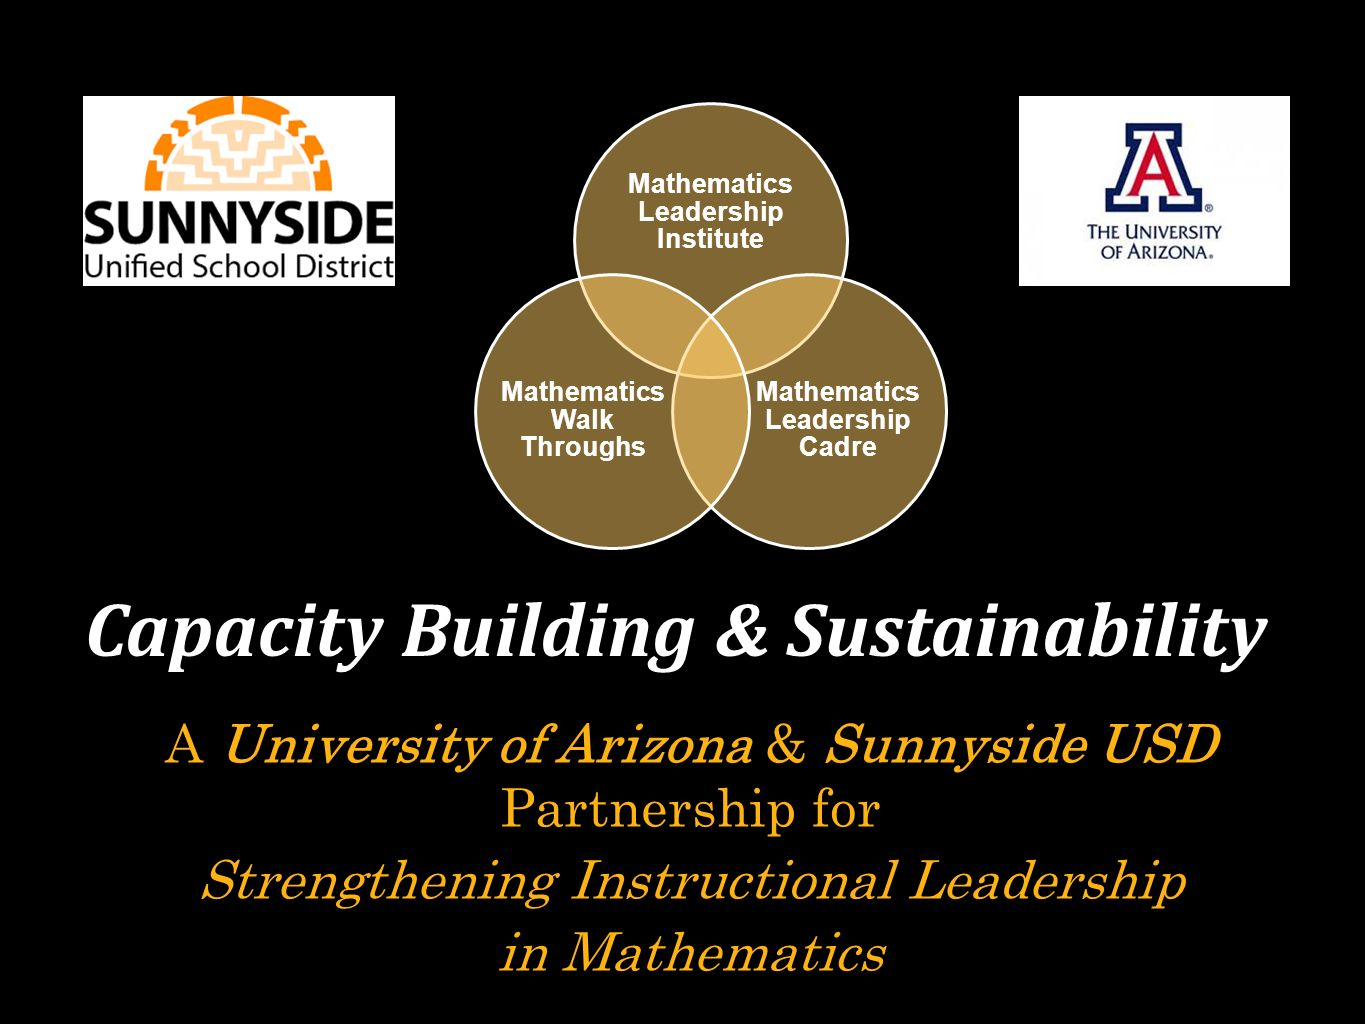 A University of Arizona & Sunnyside USD Partnership for Strengthening Instructional Leadership in Mathematics Capacity Building & Sustainability Mathematics Leadership Institute Mathematics Leadership Cadre Mathematics Walk Throughs